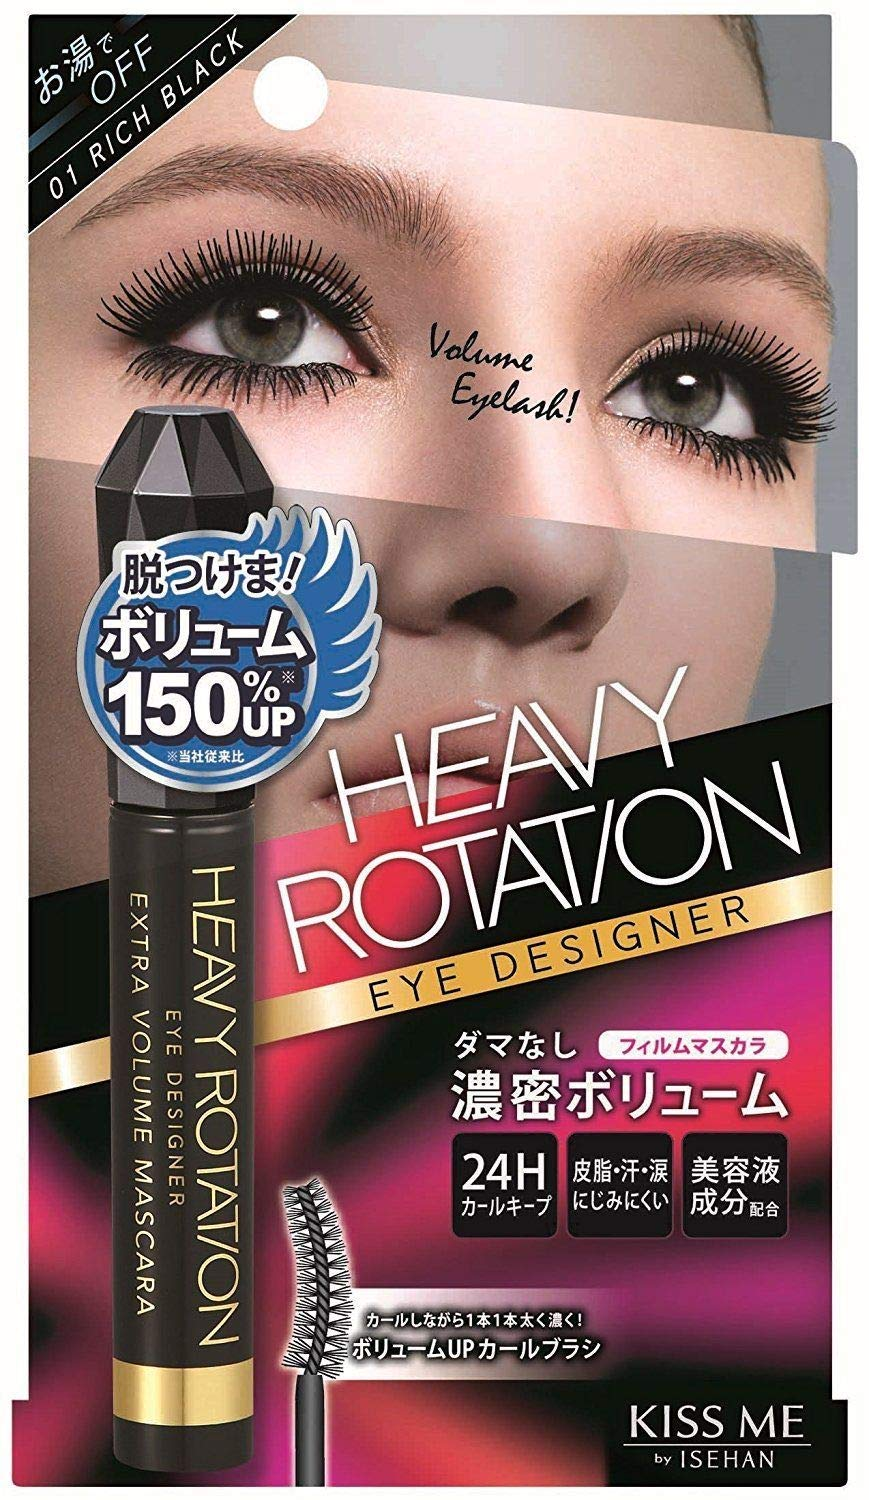 Amazon.com: KISS ME Eye Designer Extra Volume Mascara Rich ...